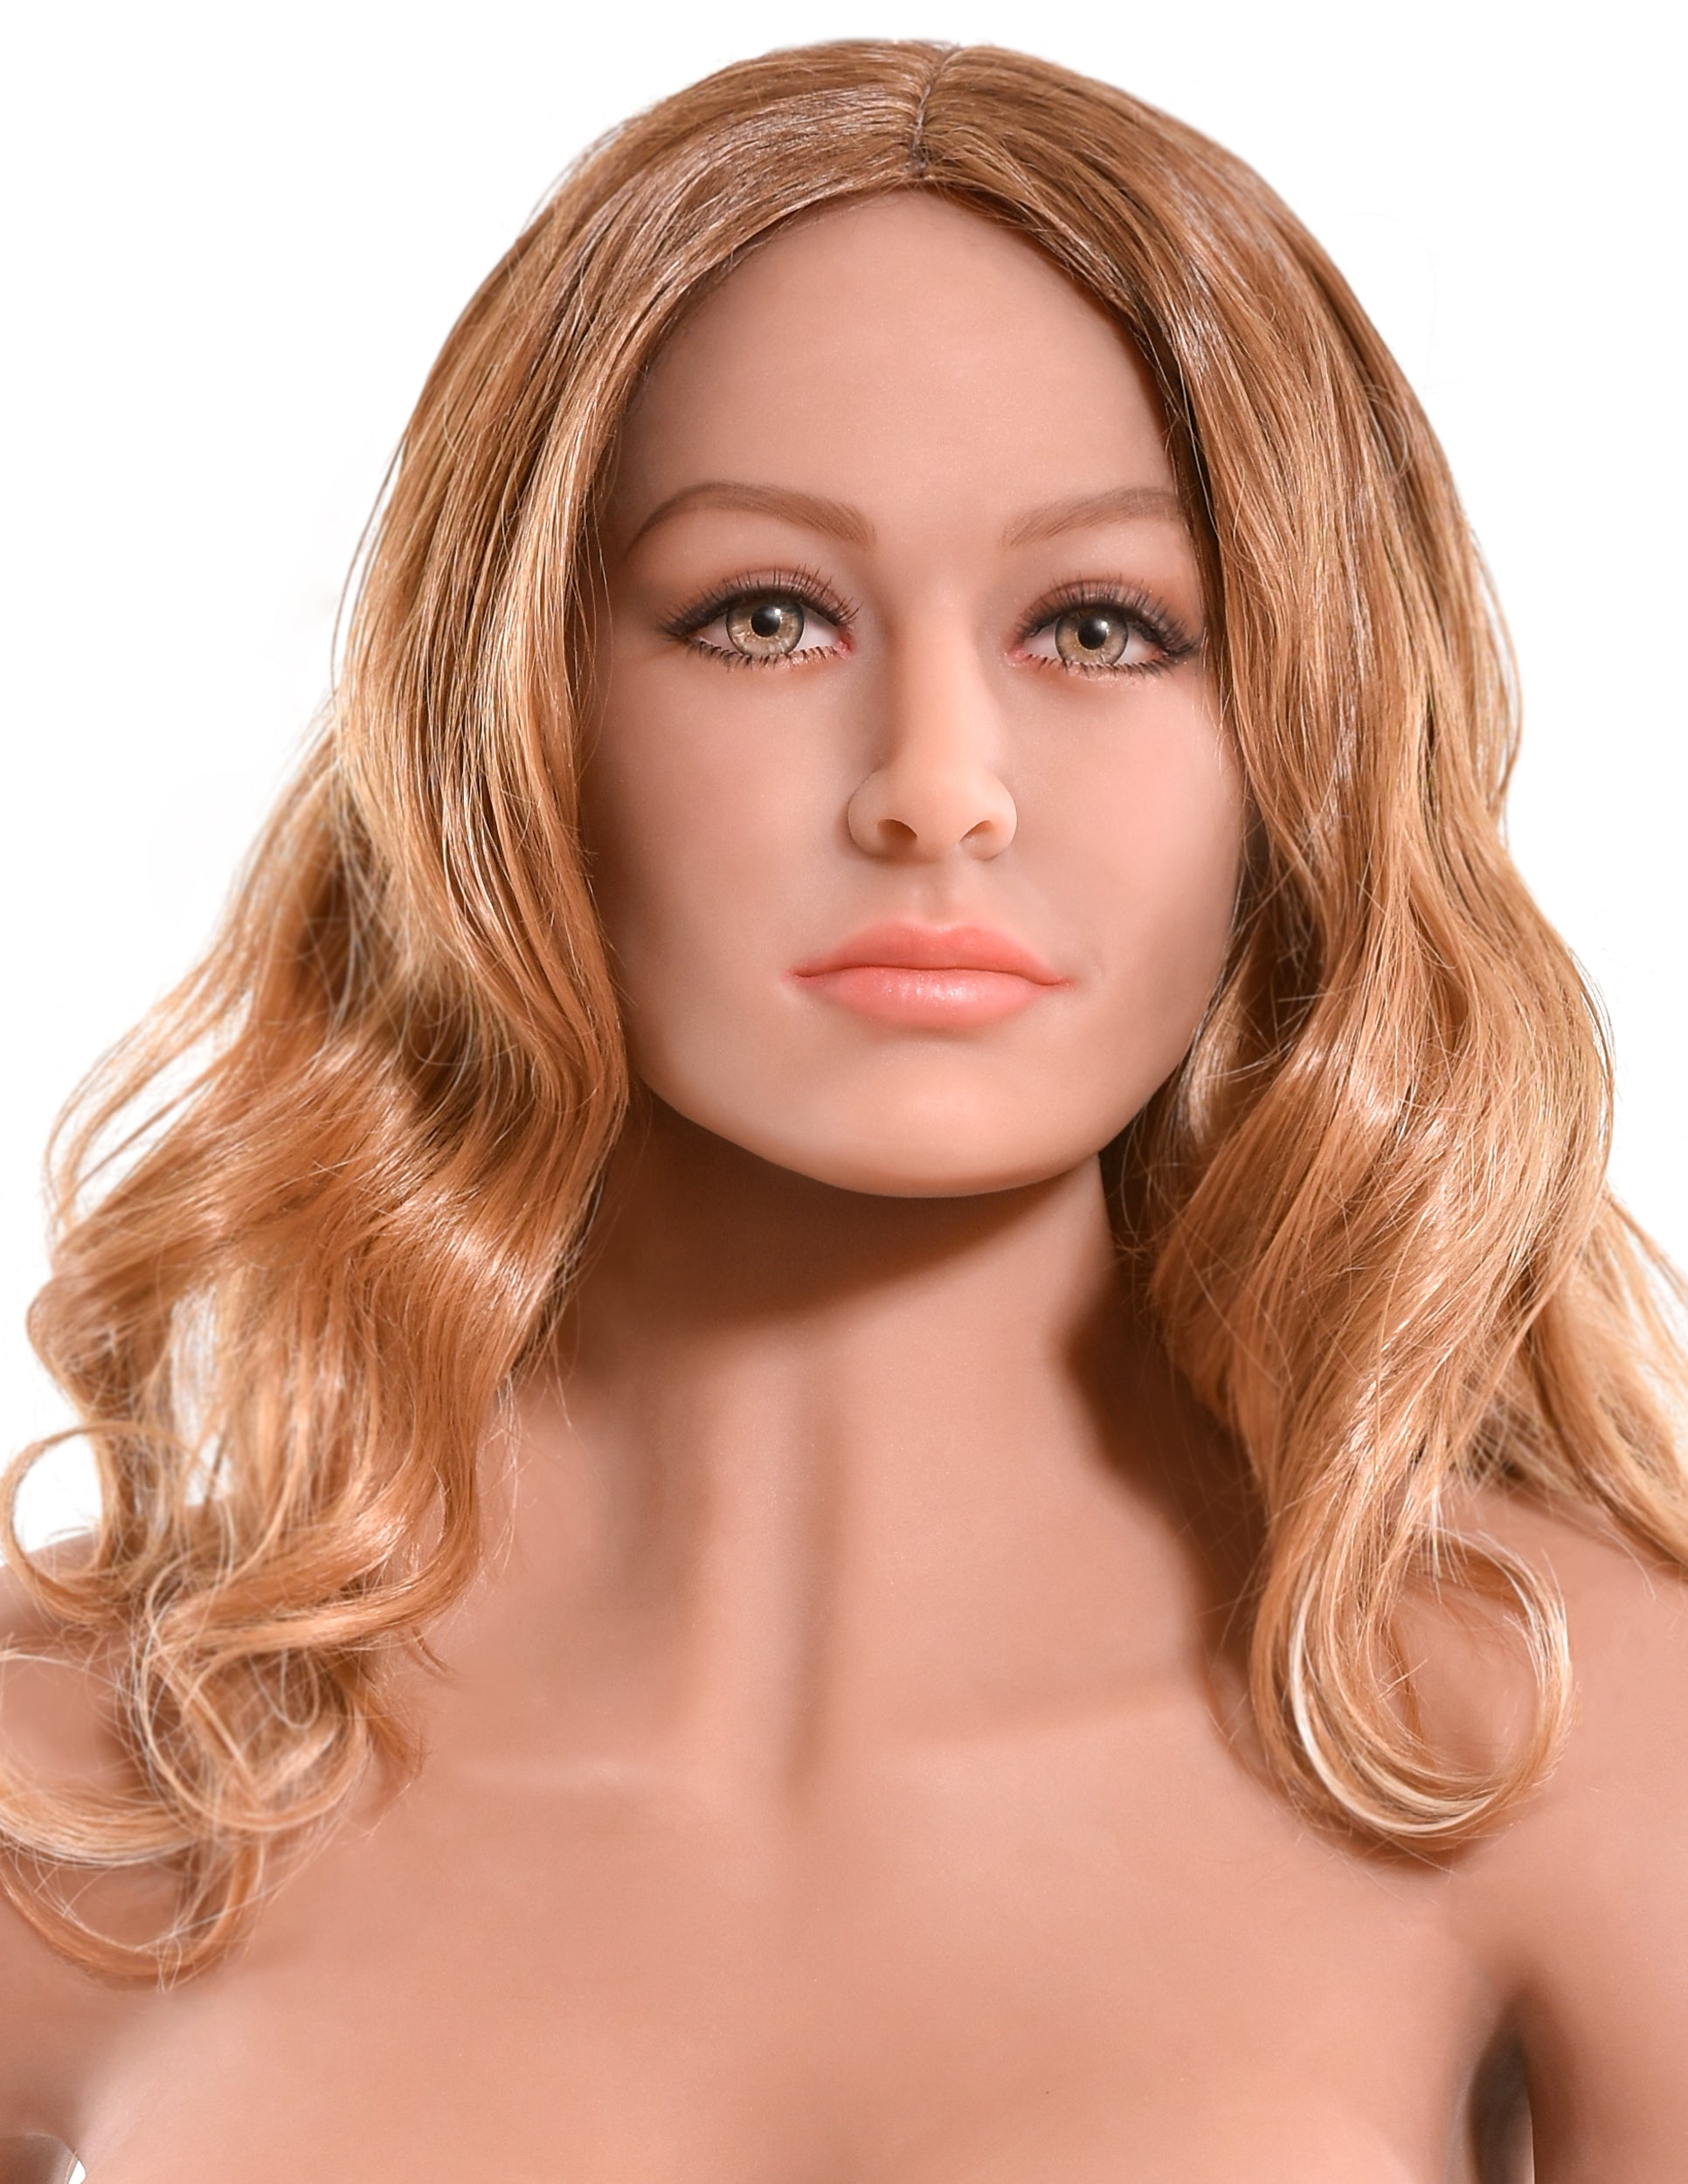 Ultimate Fantasy Dolls - Bianca head and shoulders only